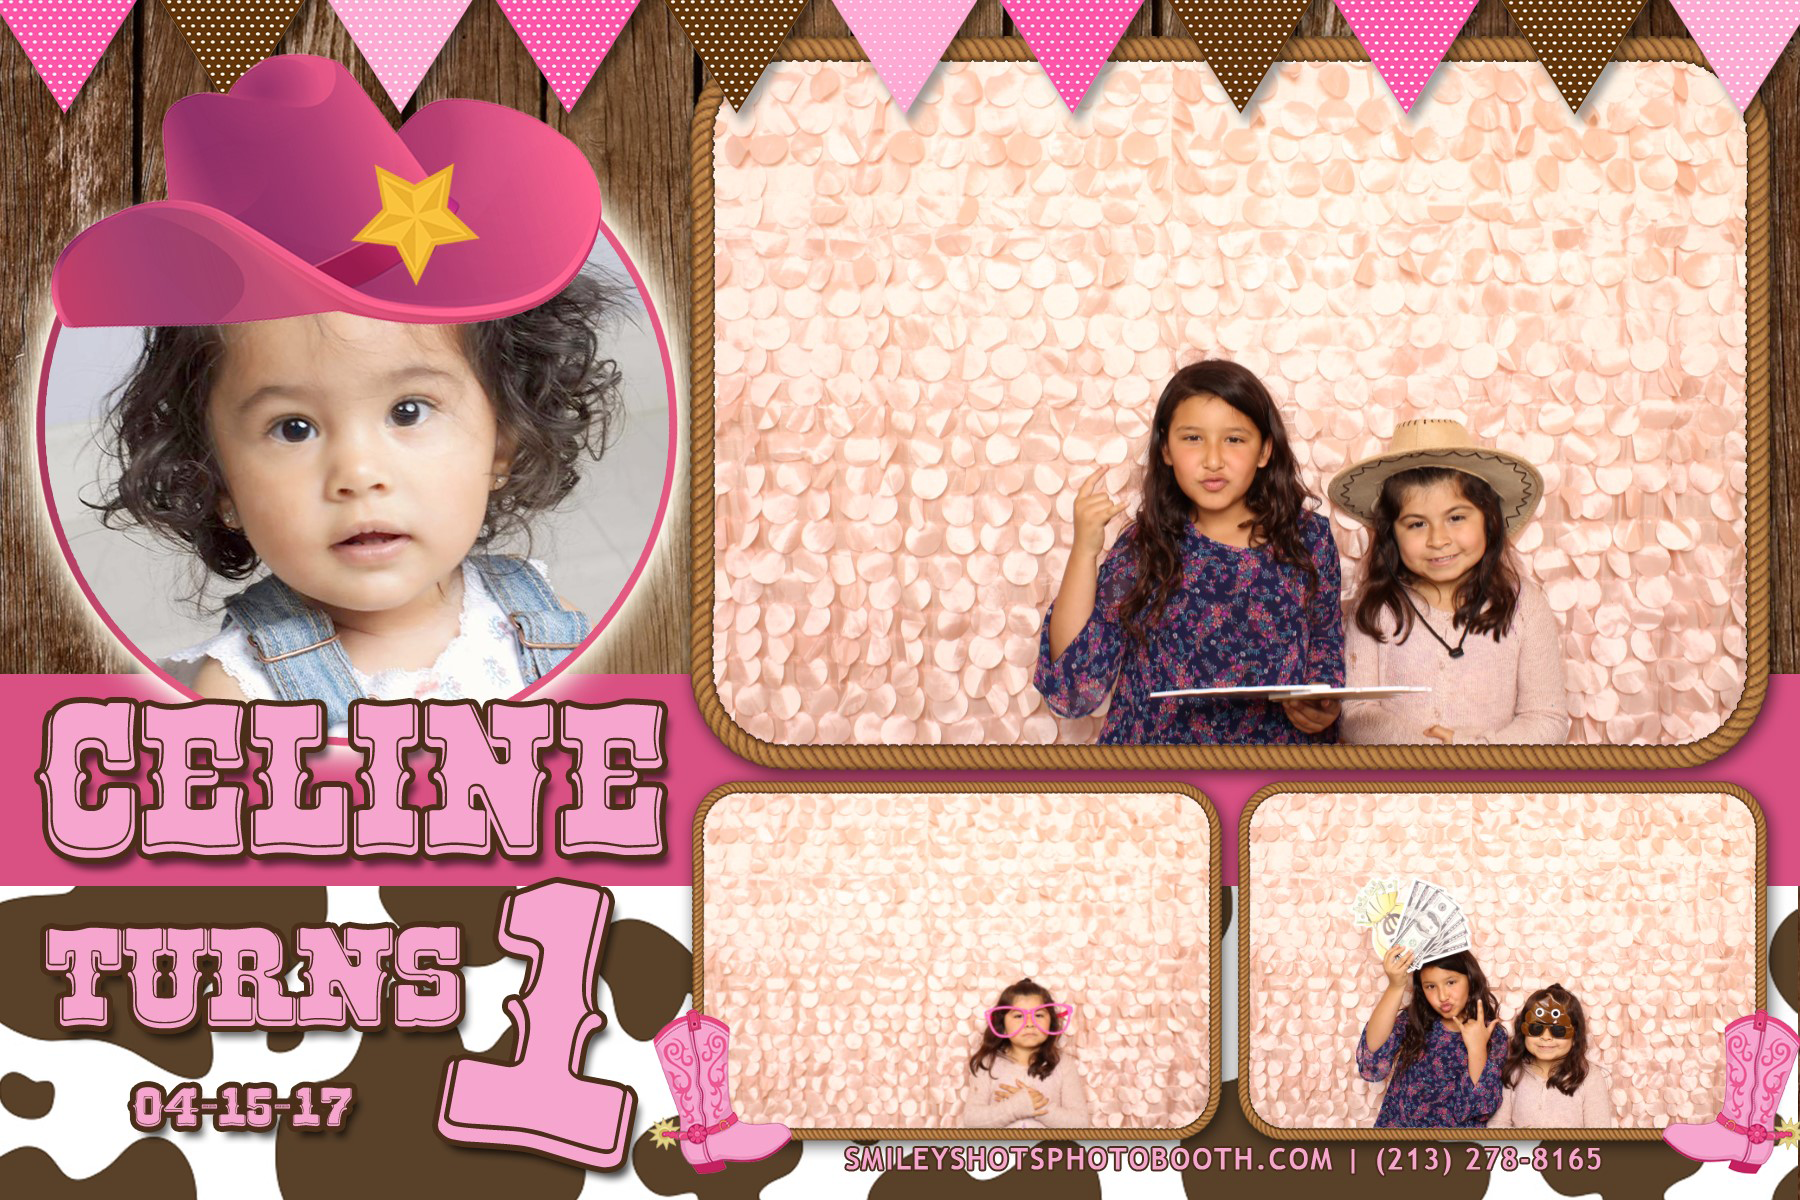 Celine turns 1 Smiley Shots Photo Booth Photobooth (23).png